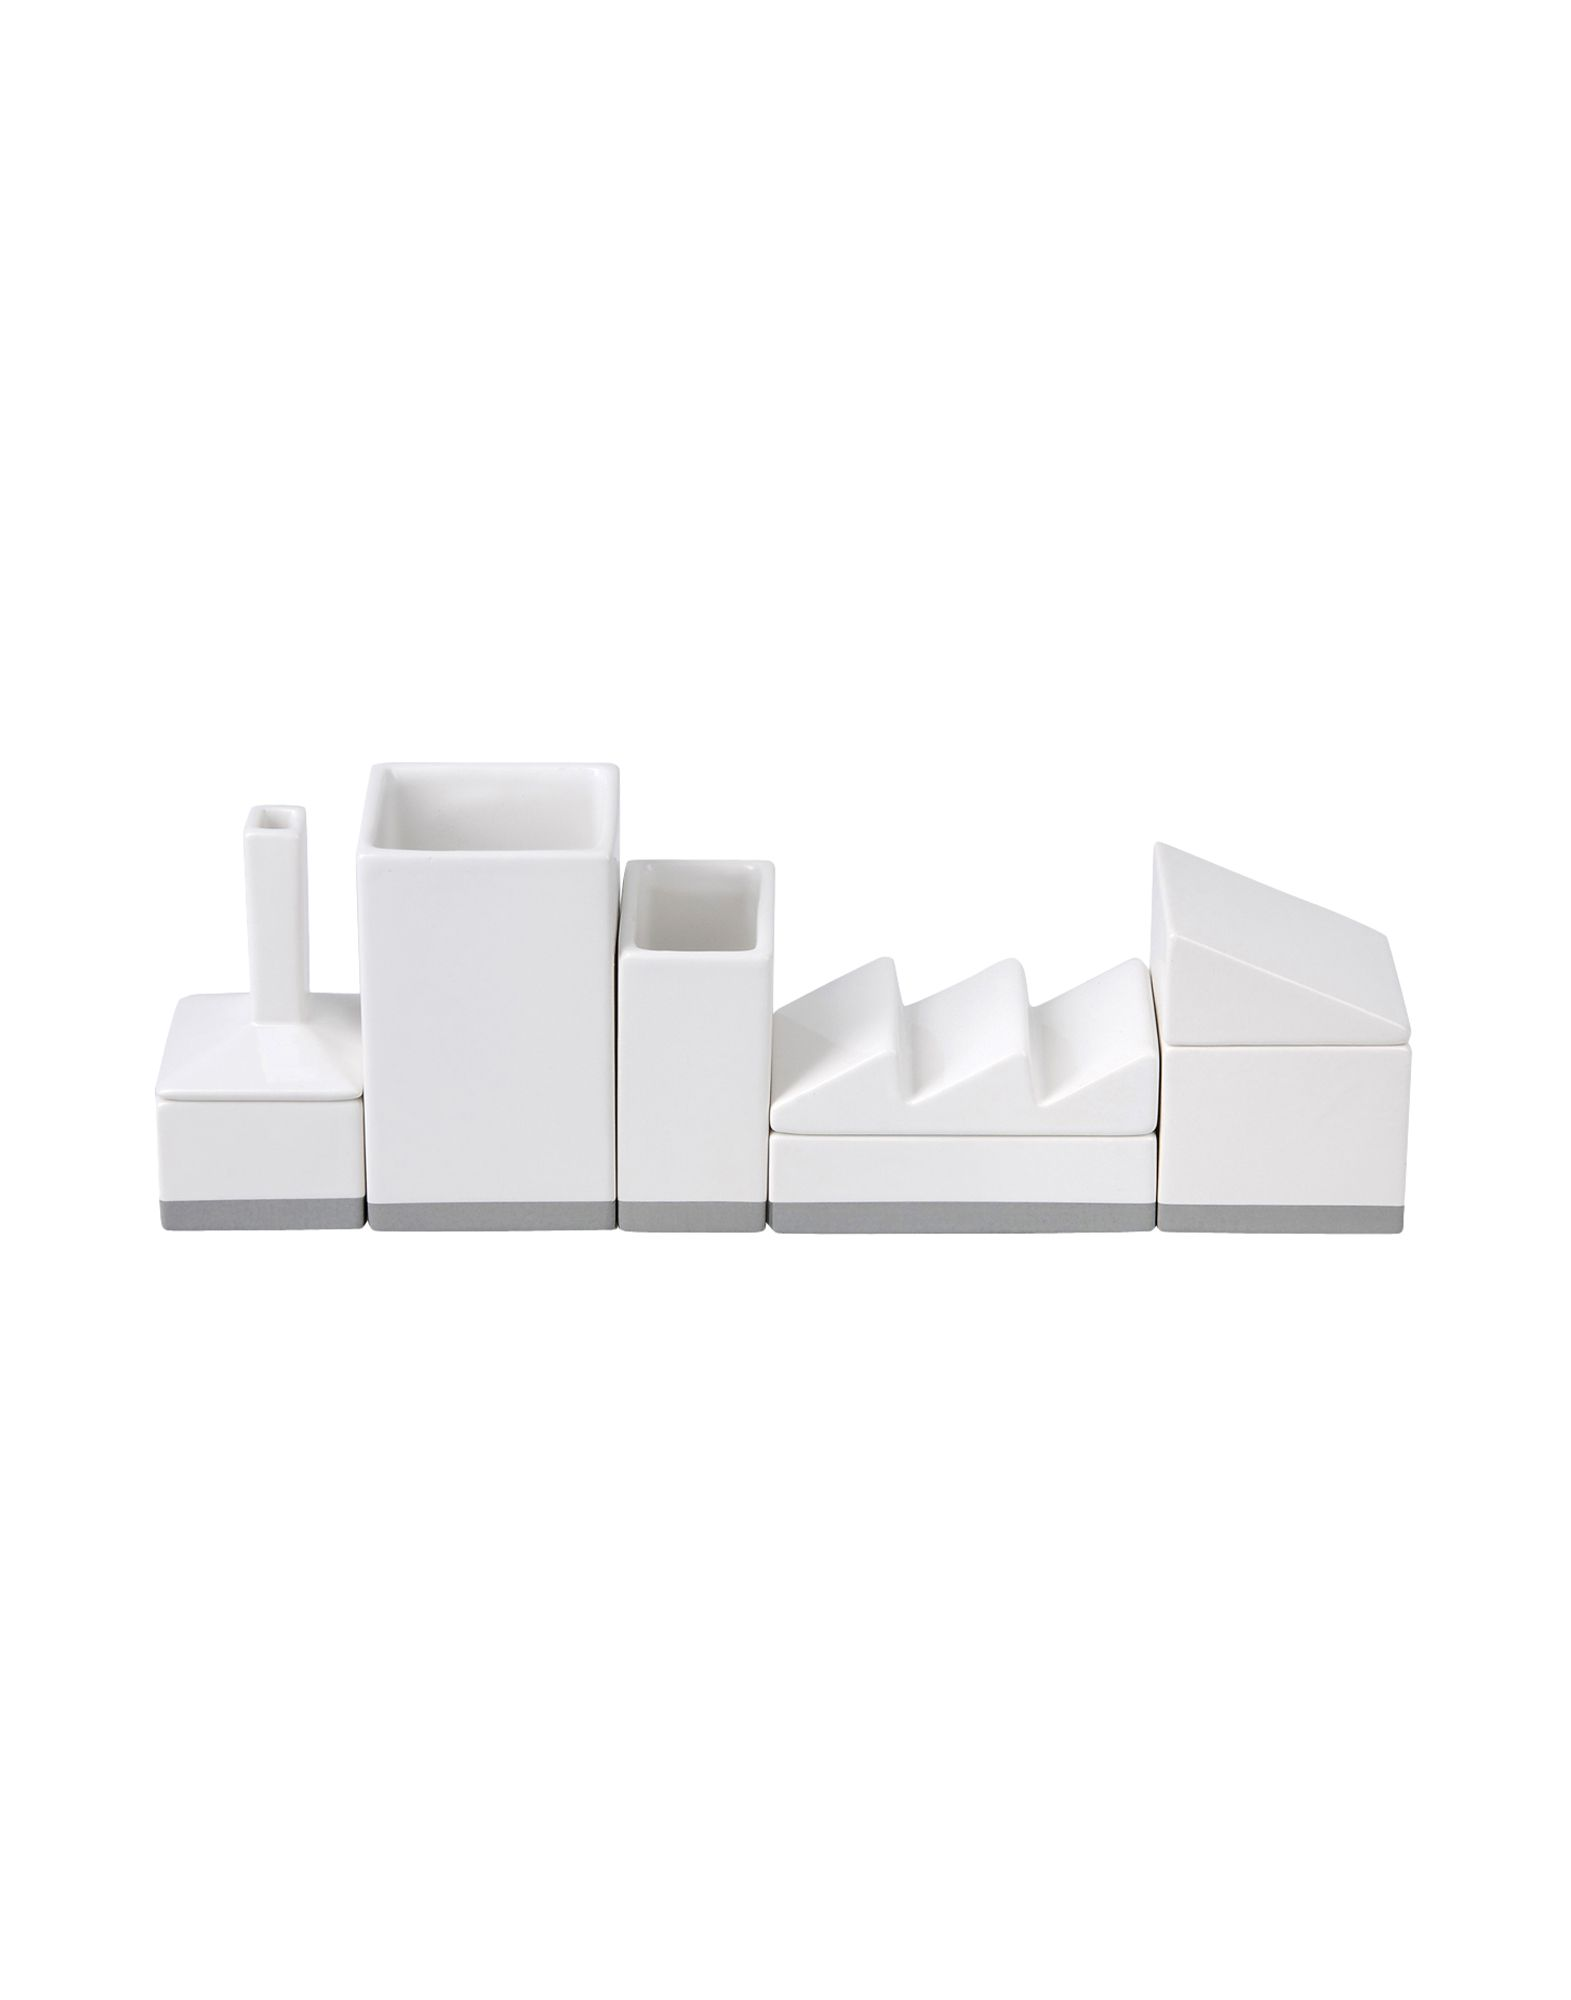 SELETTI Small objects  Item 58017013 1